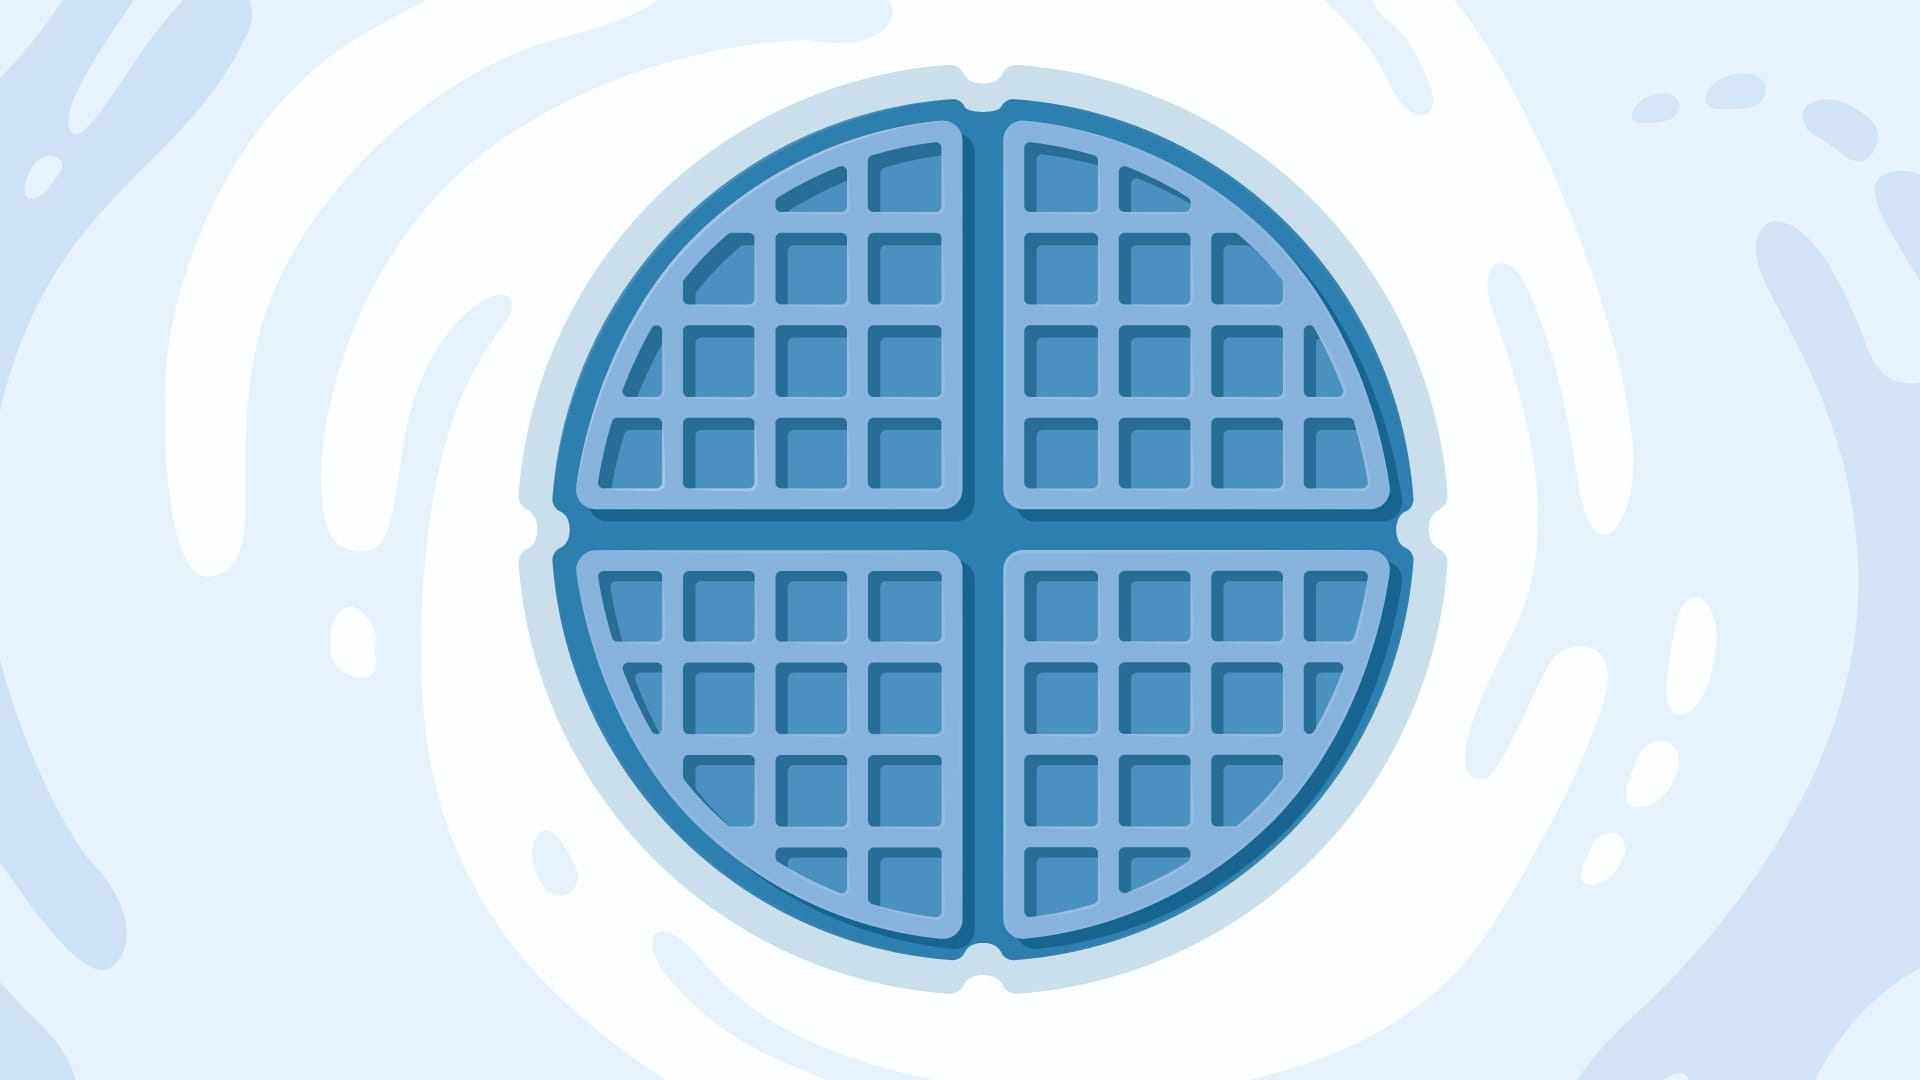 An illustration of a blue waffle